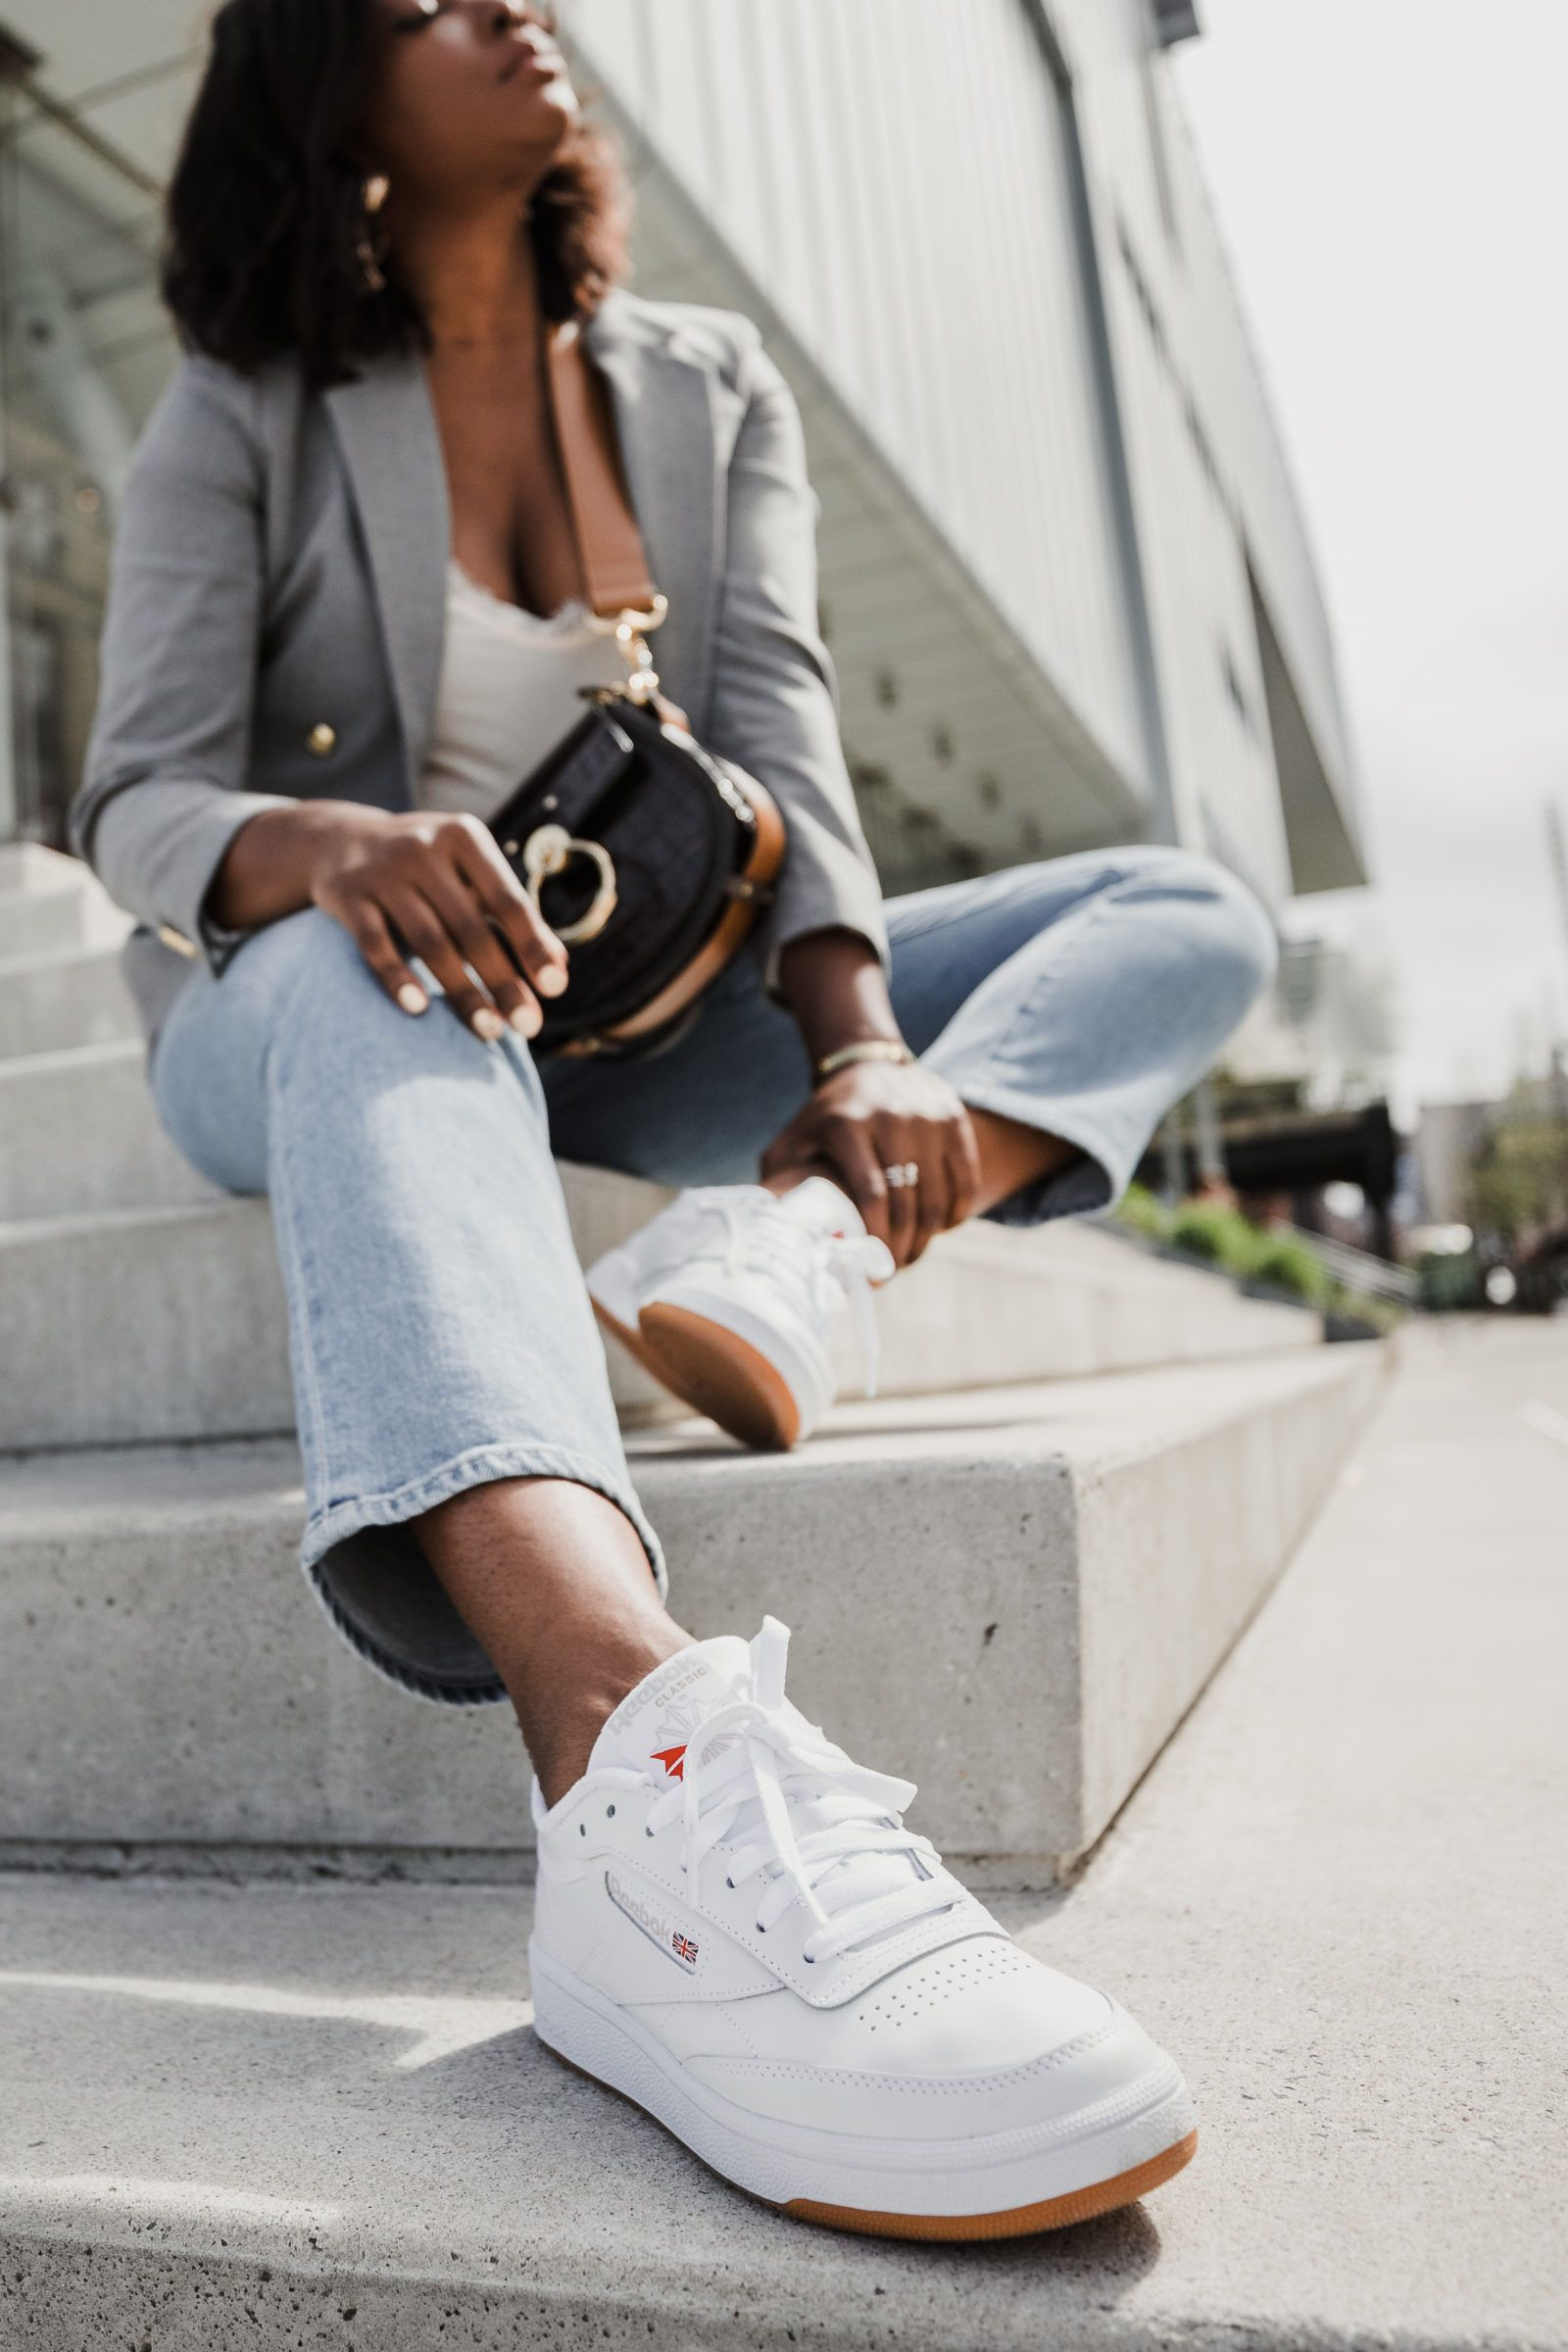 agrio comerciante implícito  OOTD feat. Reebok Club C 85 Sneakers » coco bassey | Reebok white sneakers,  Reebok club c, White sneakers women